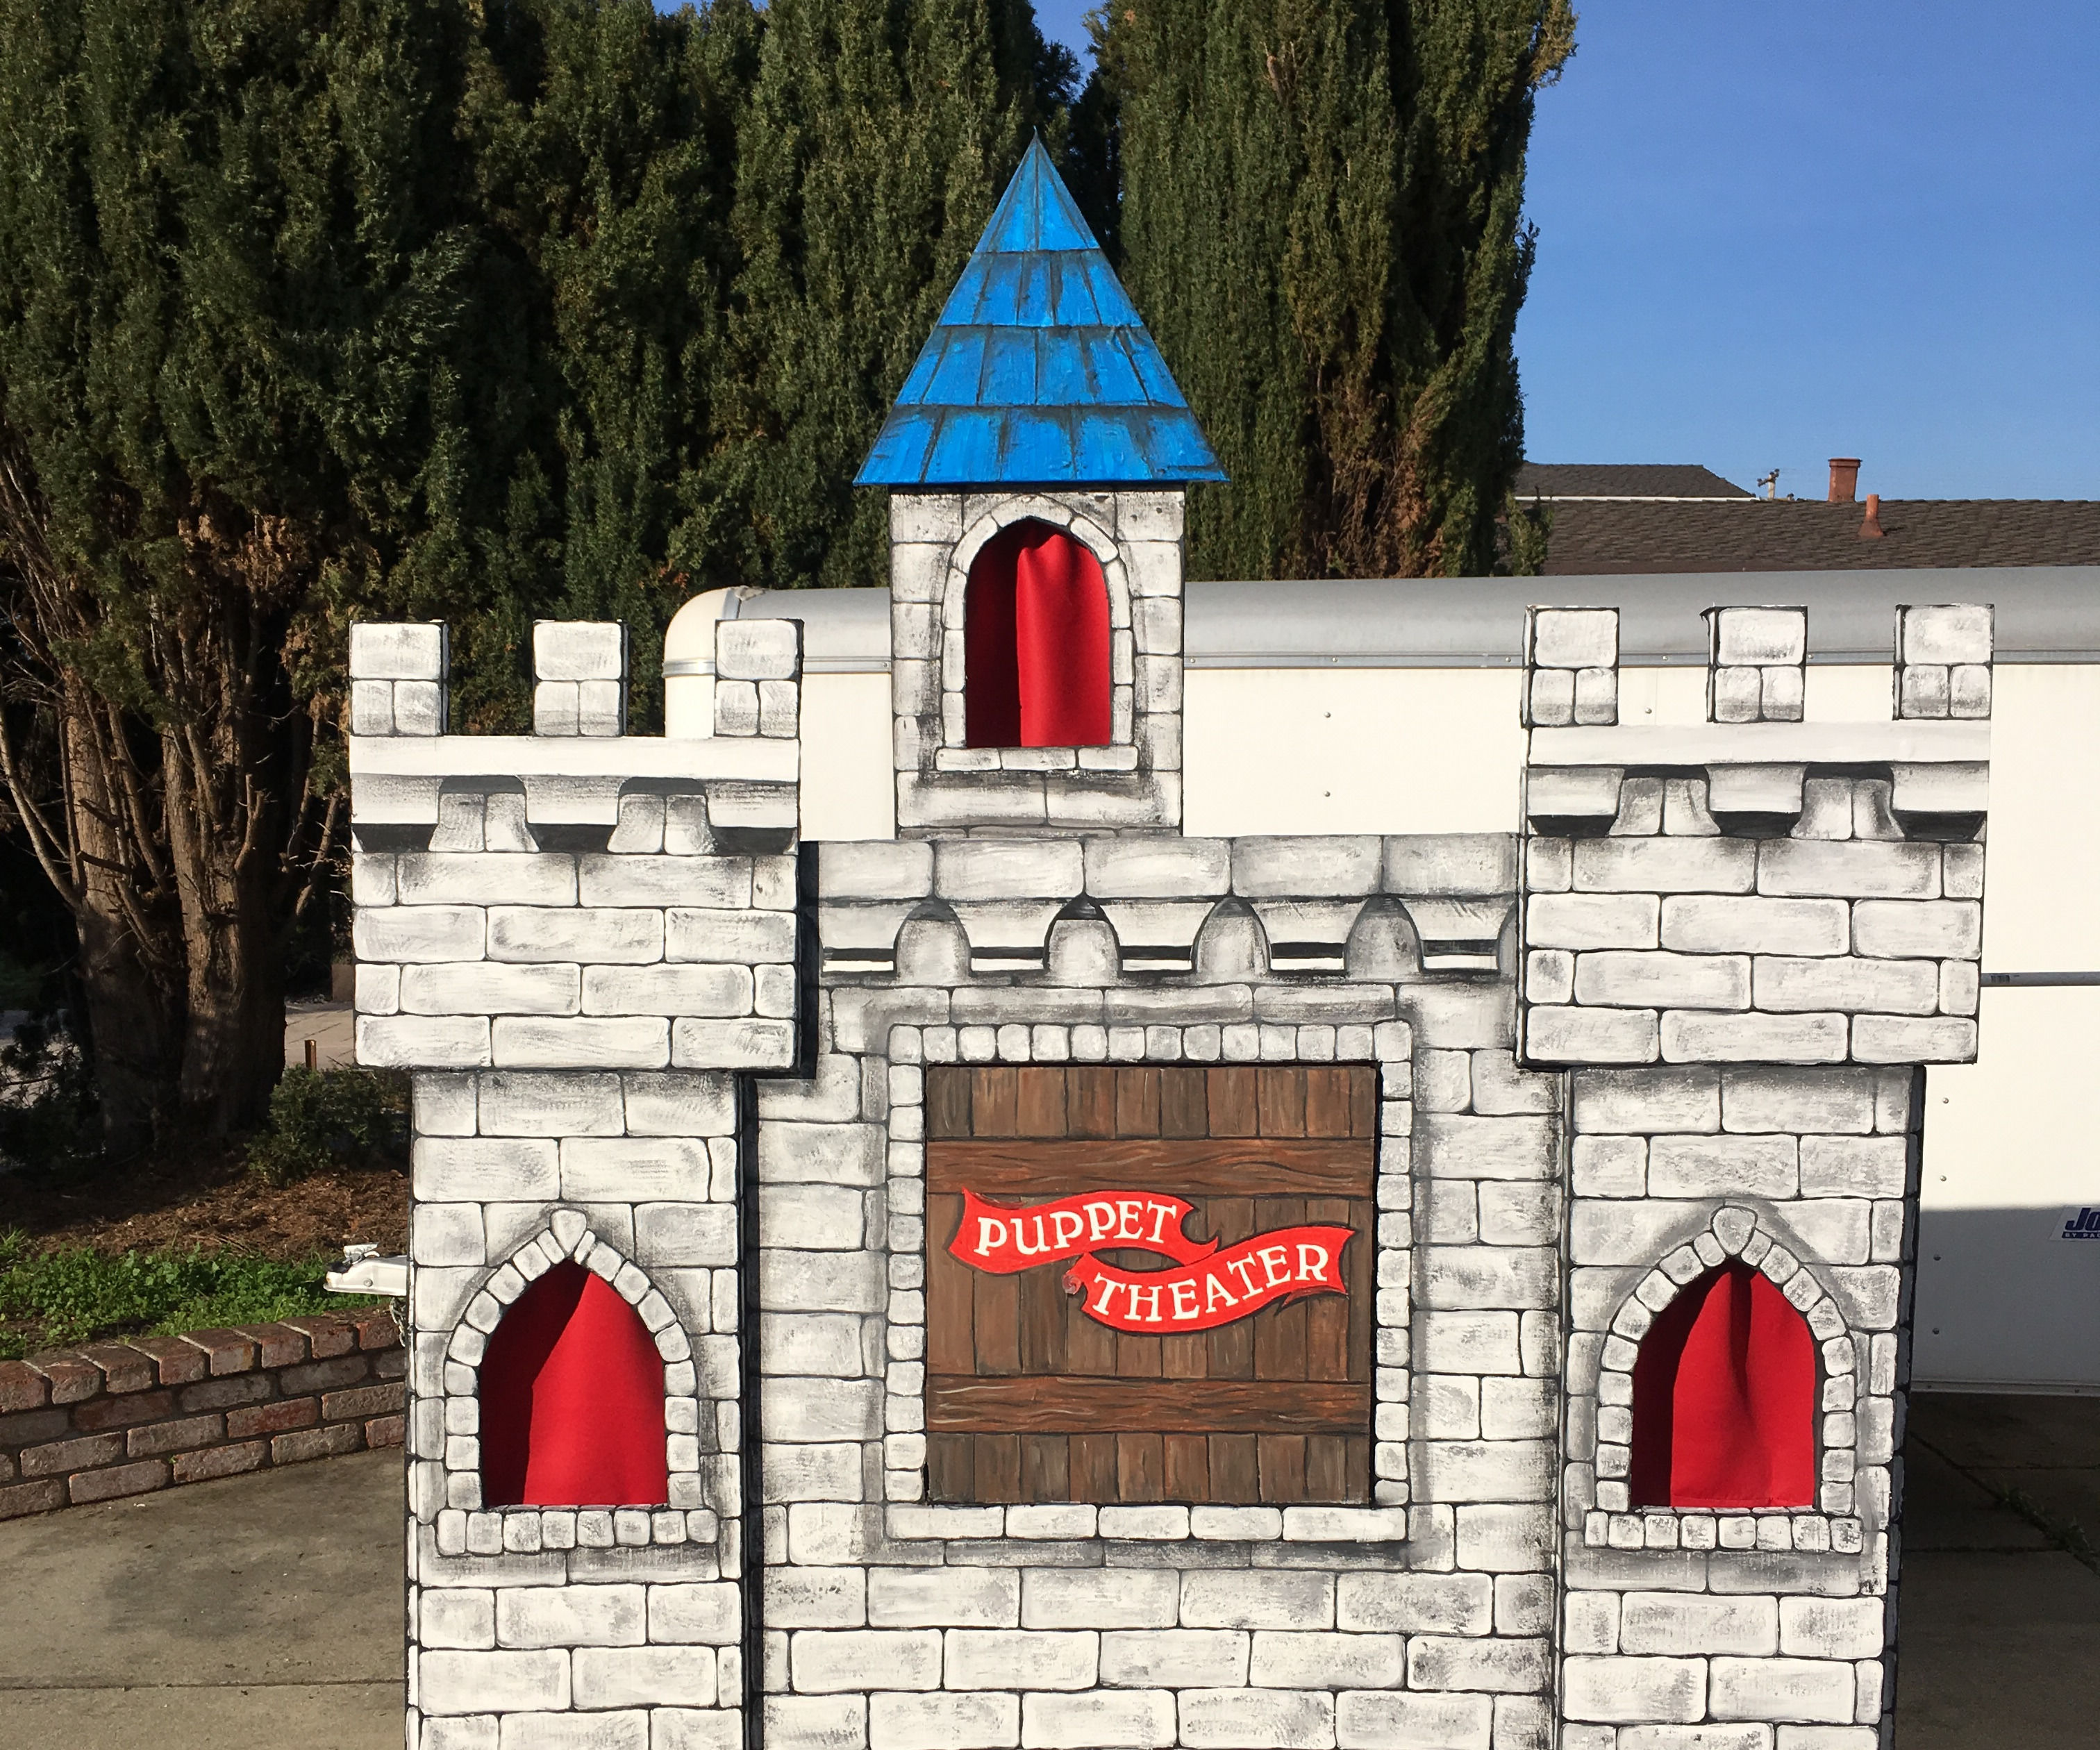 Toy Puppet Theater